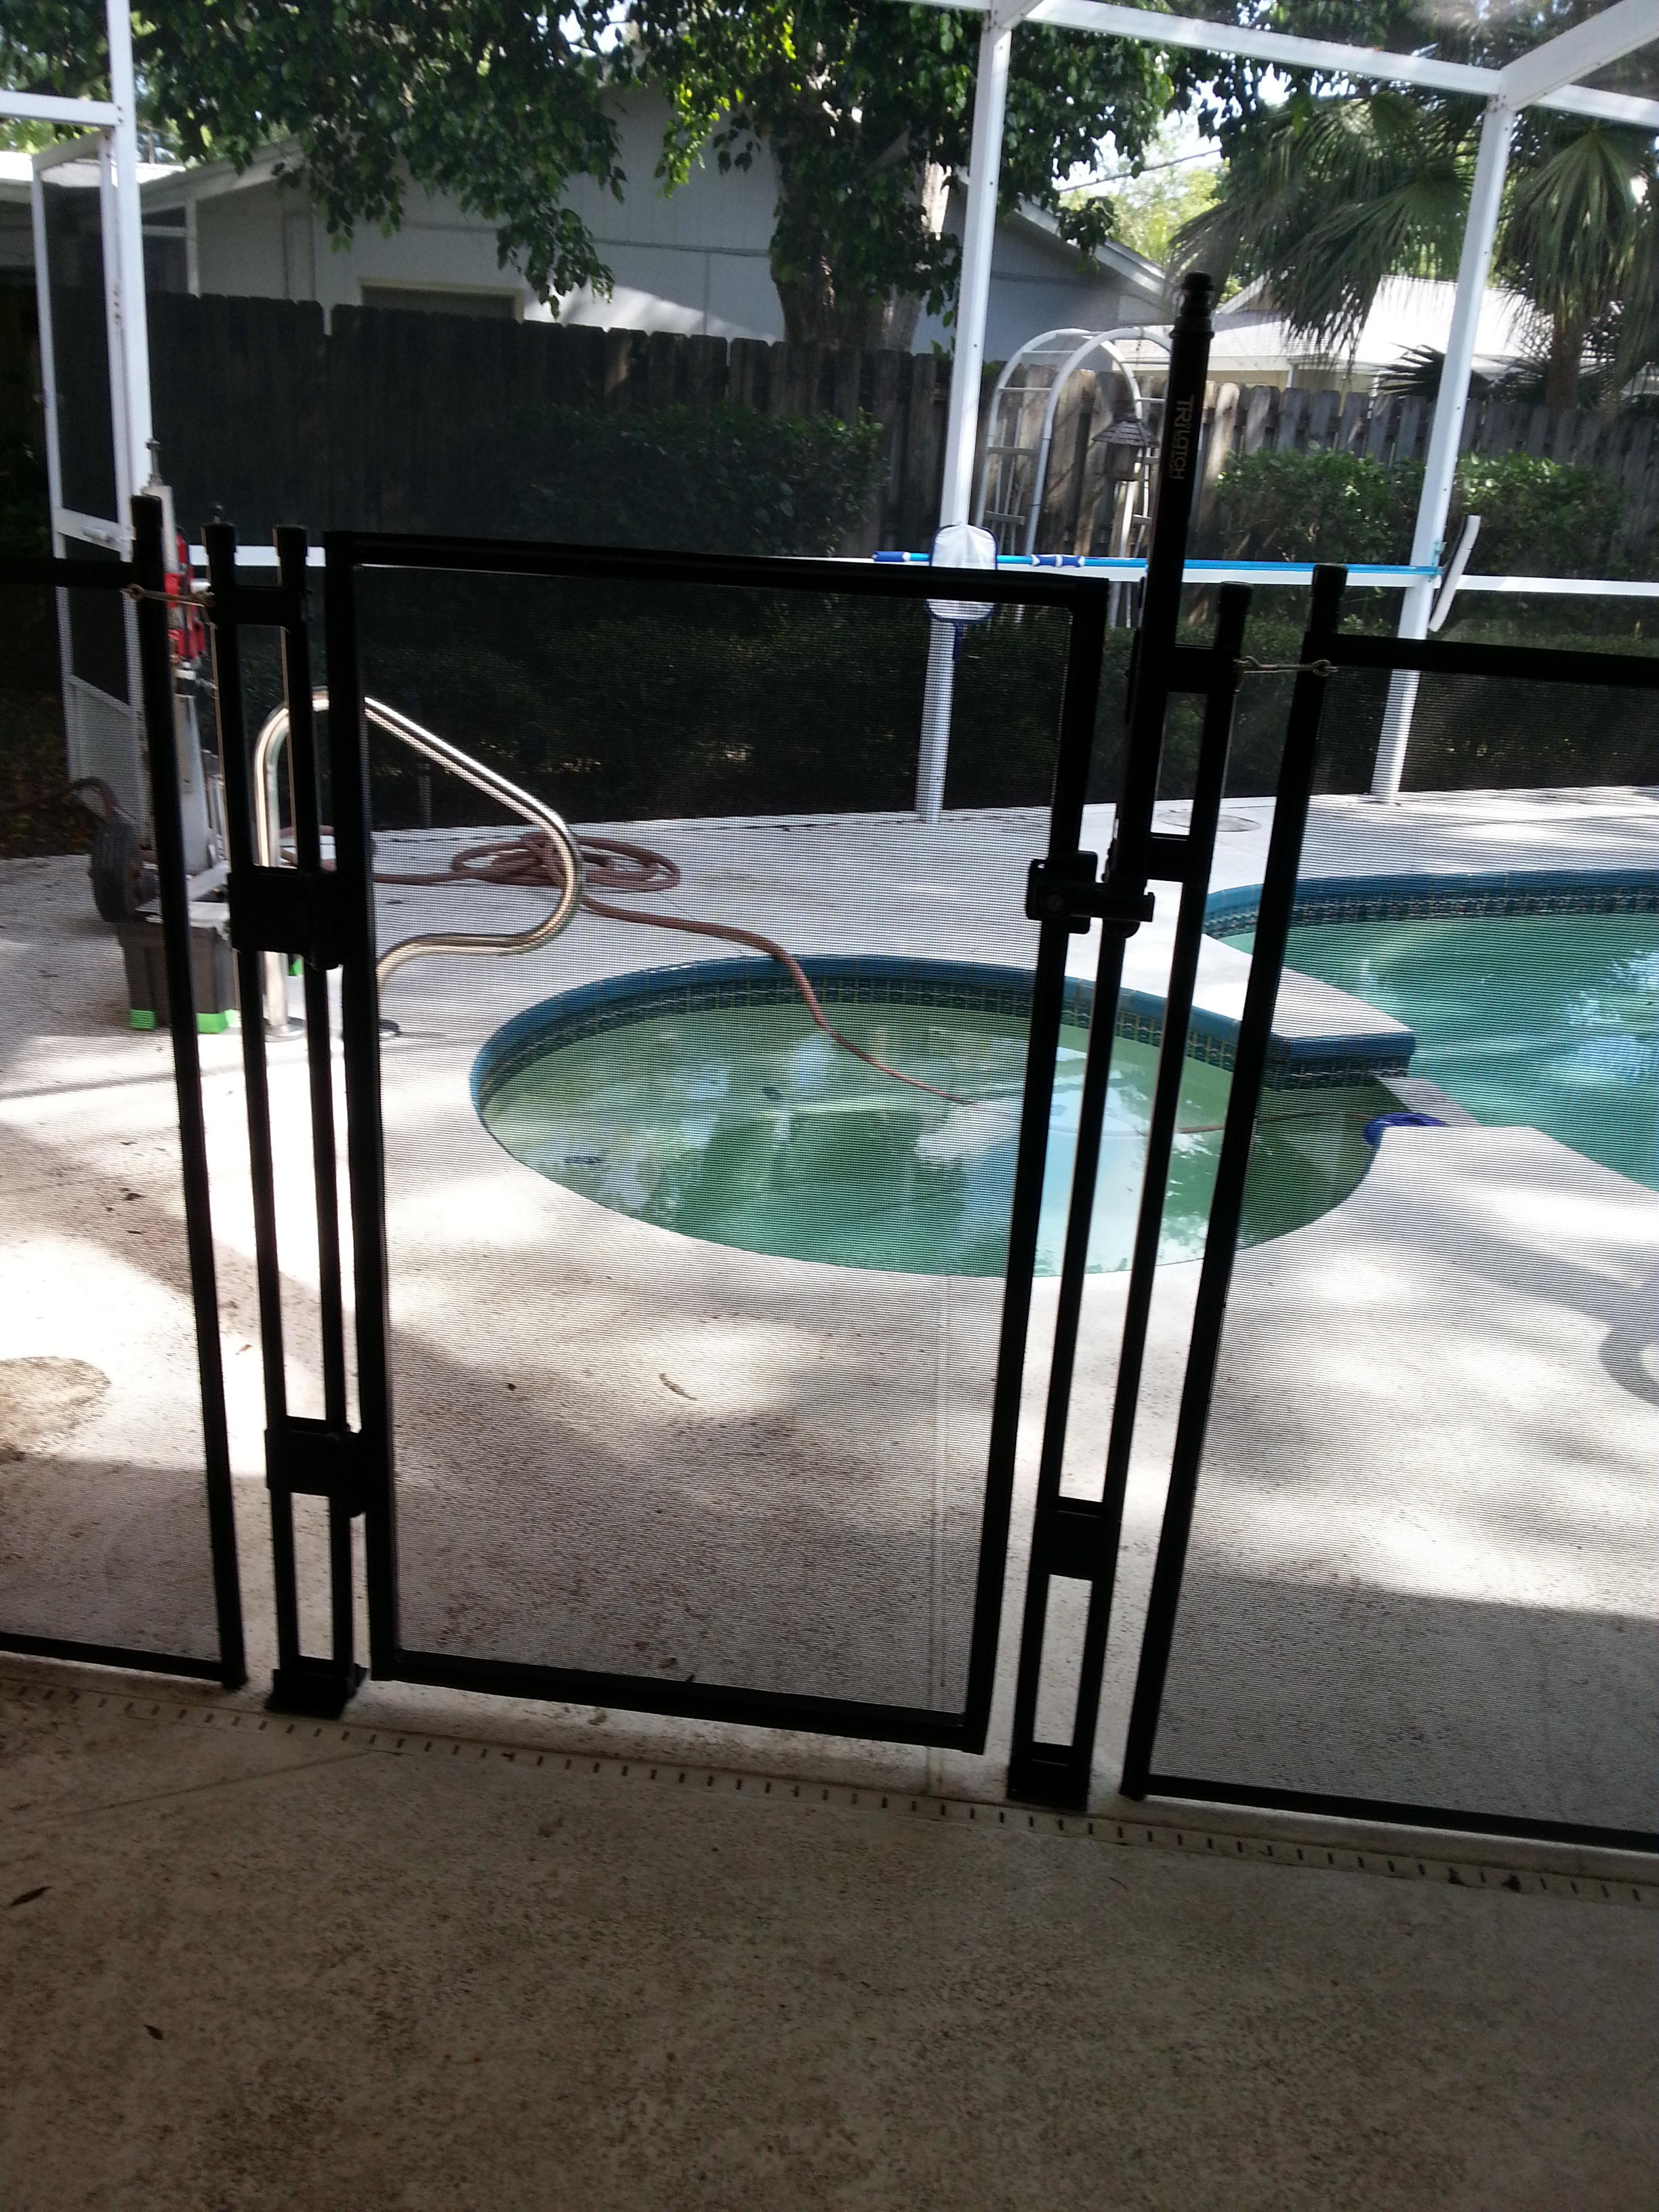 Childcare pool fence systems in palm harbor fl